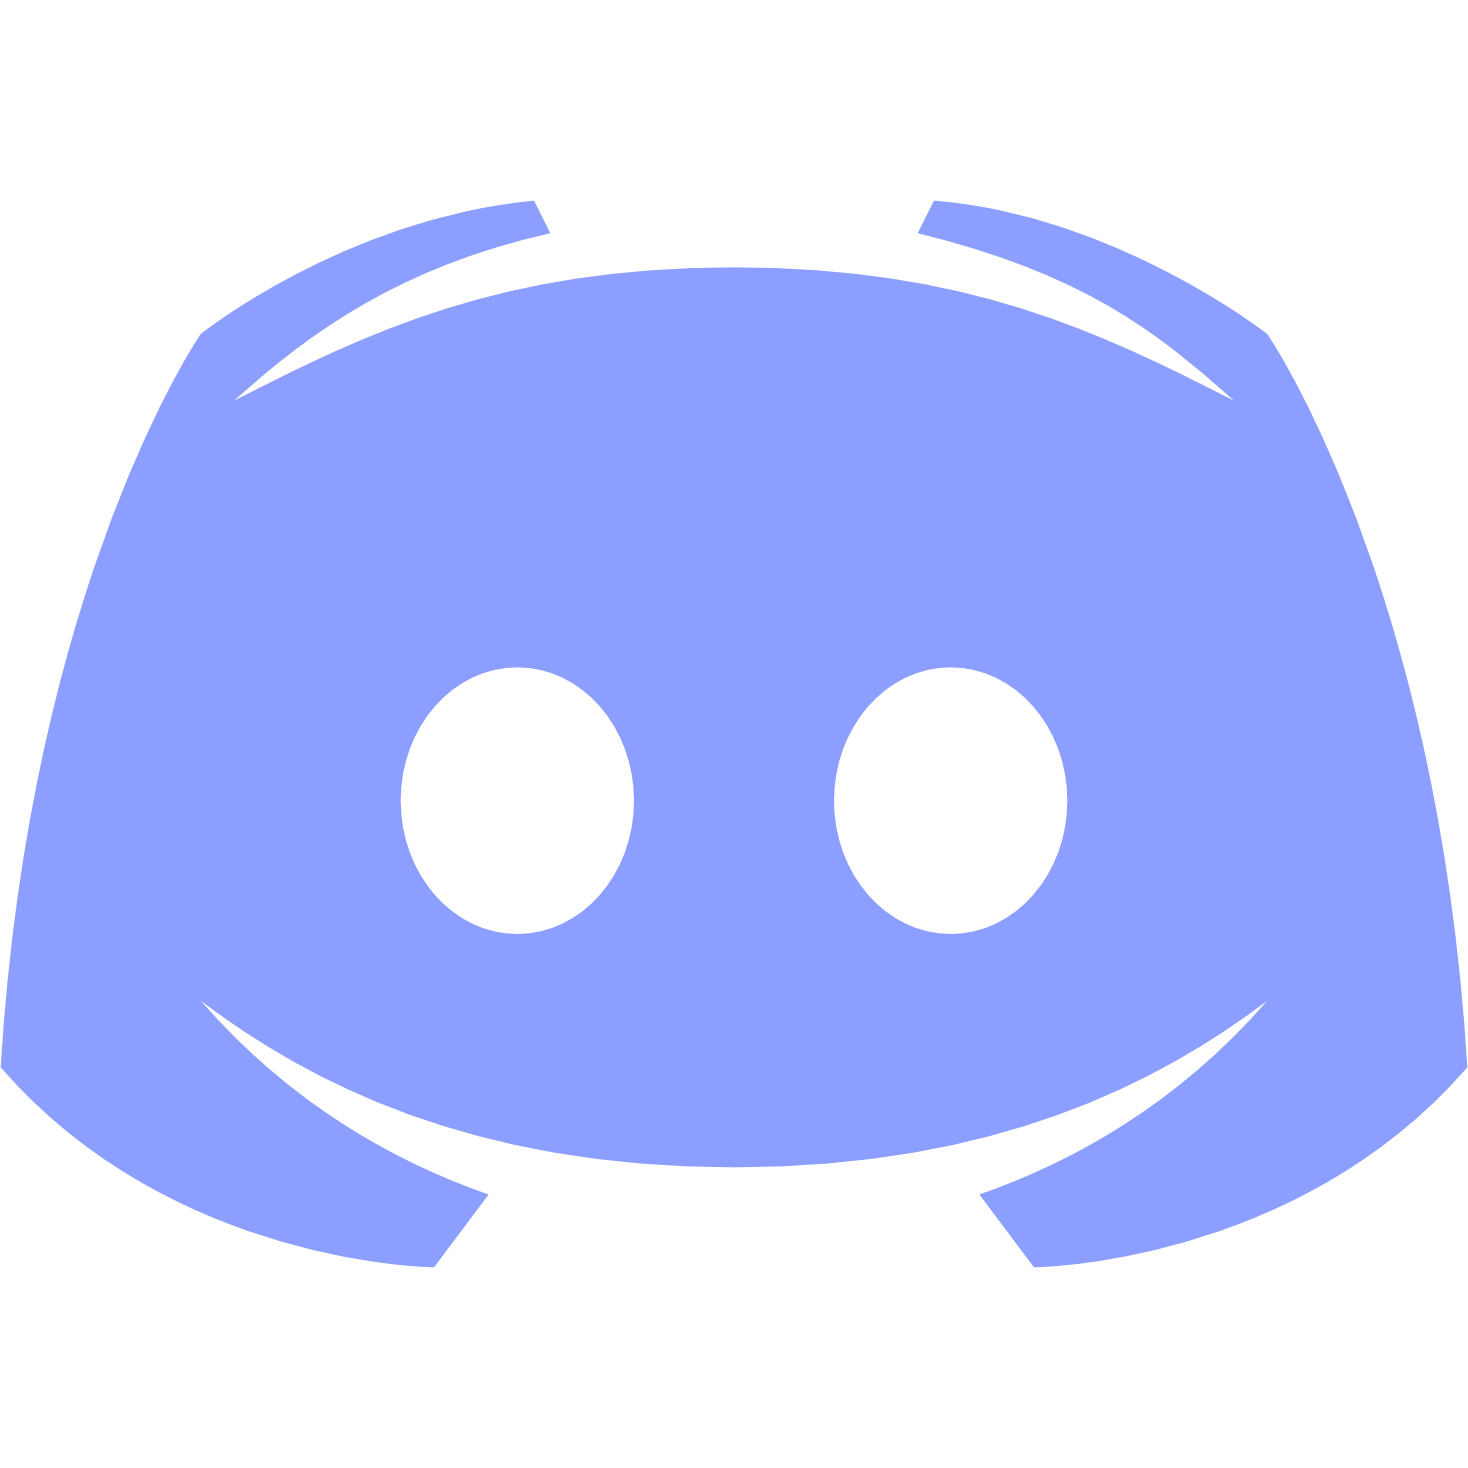 Image marvel tsum game. Discord icon png